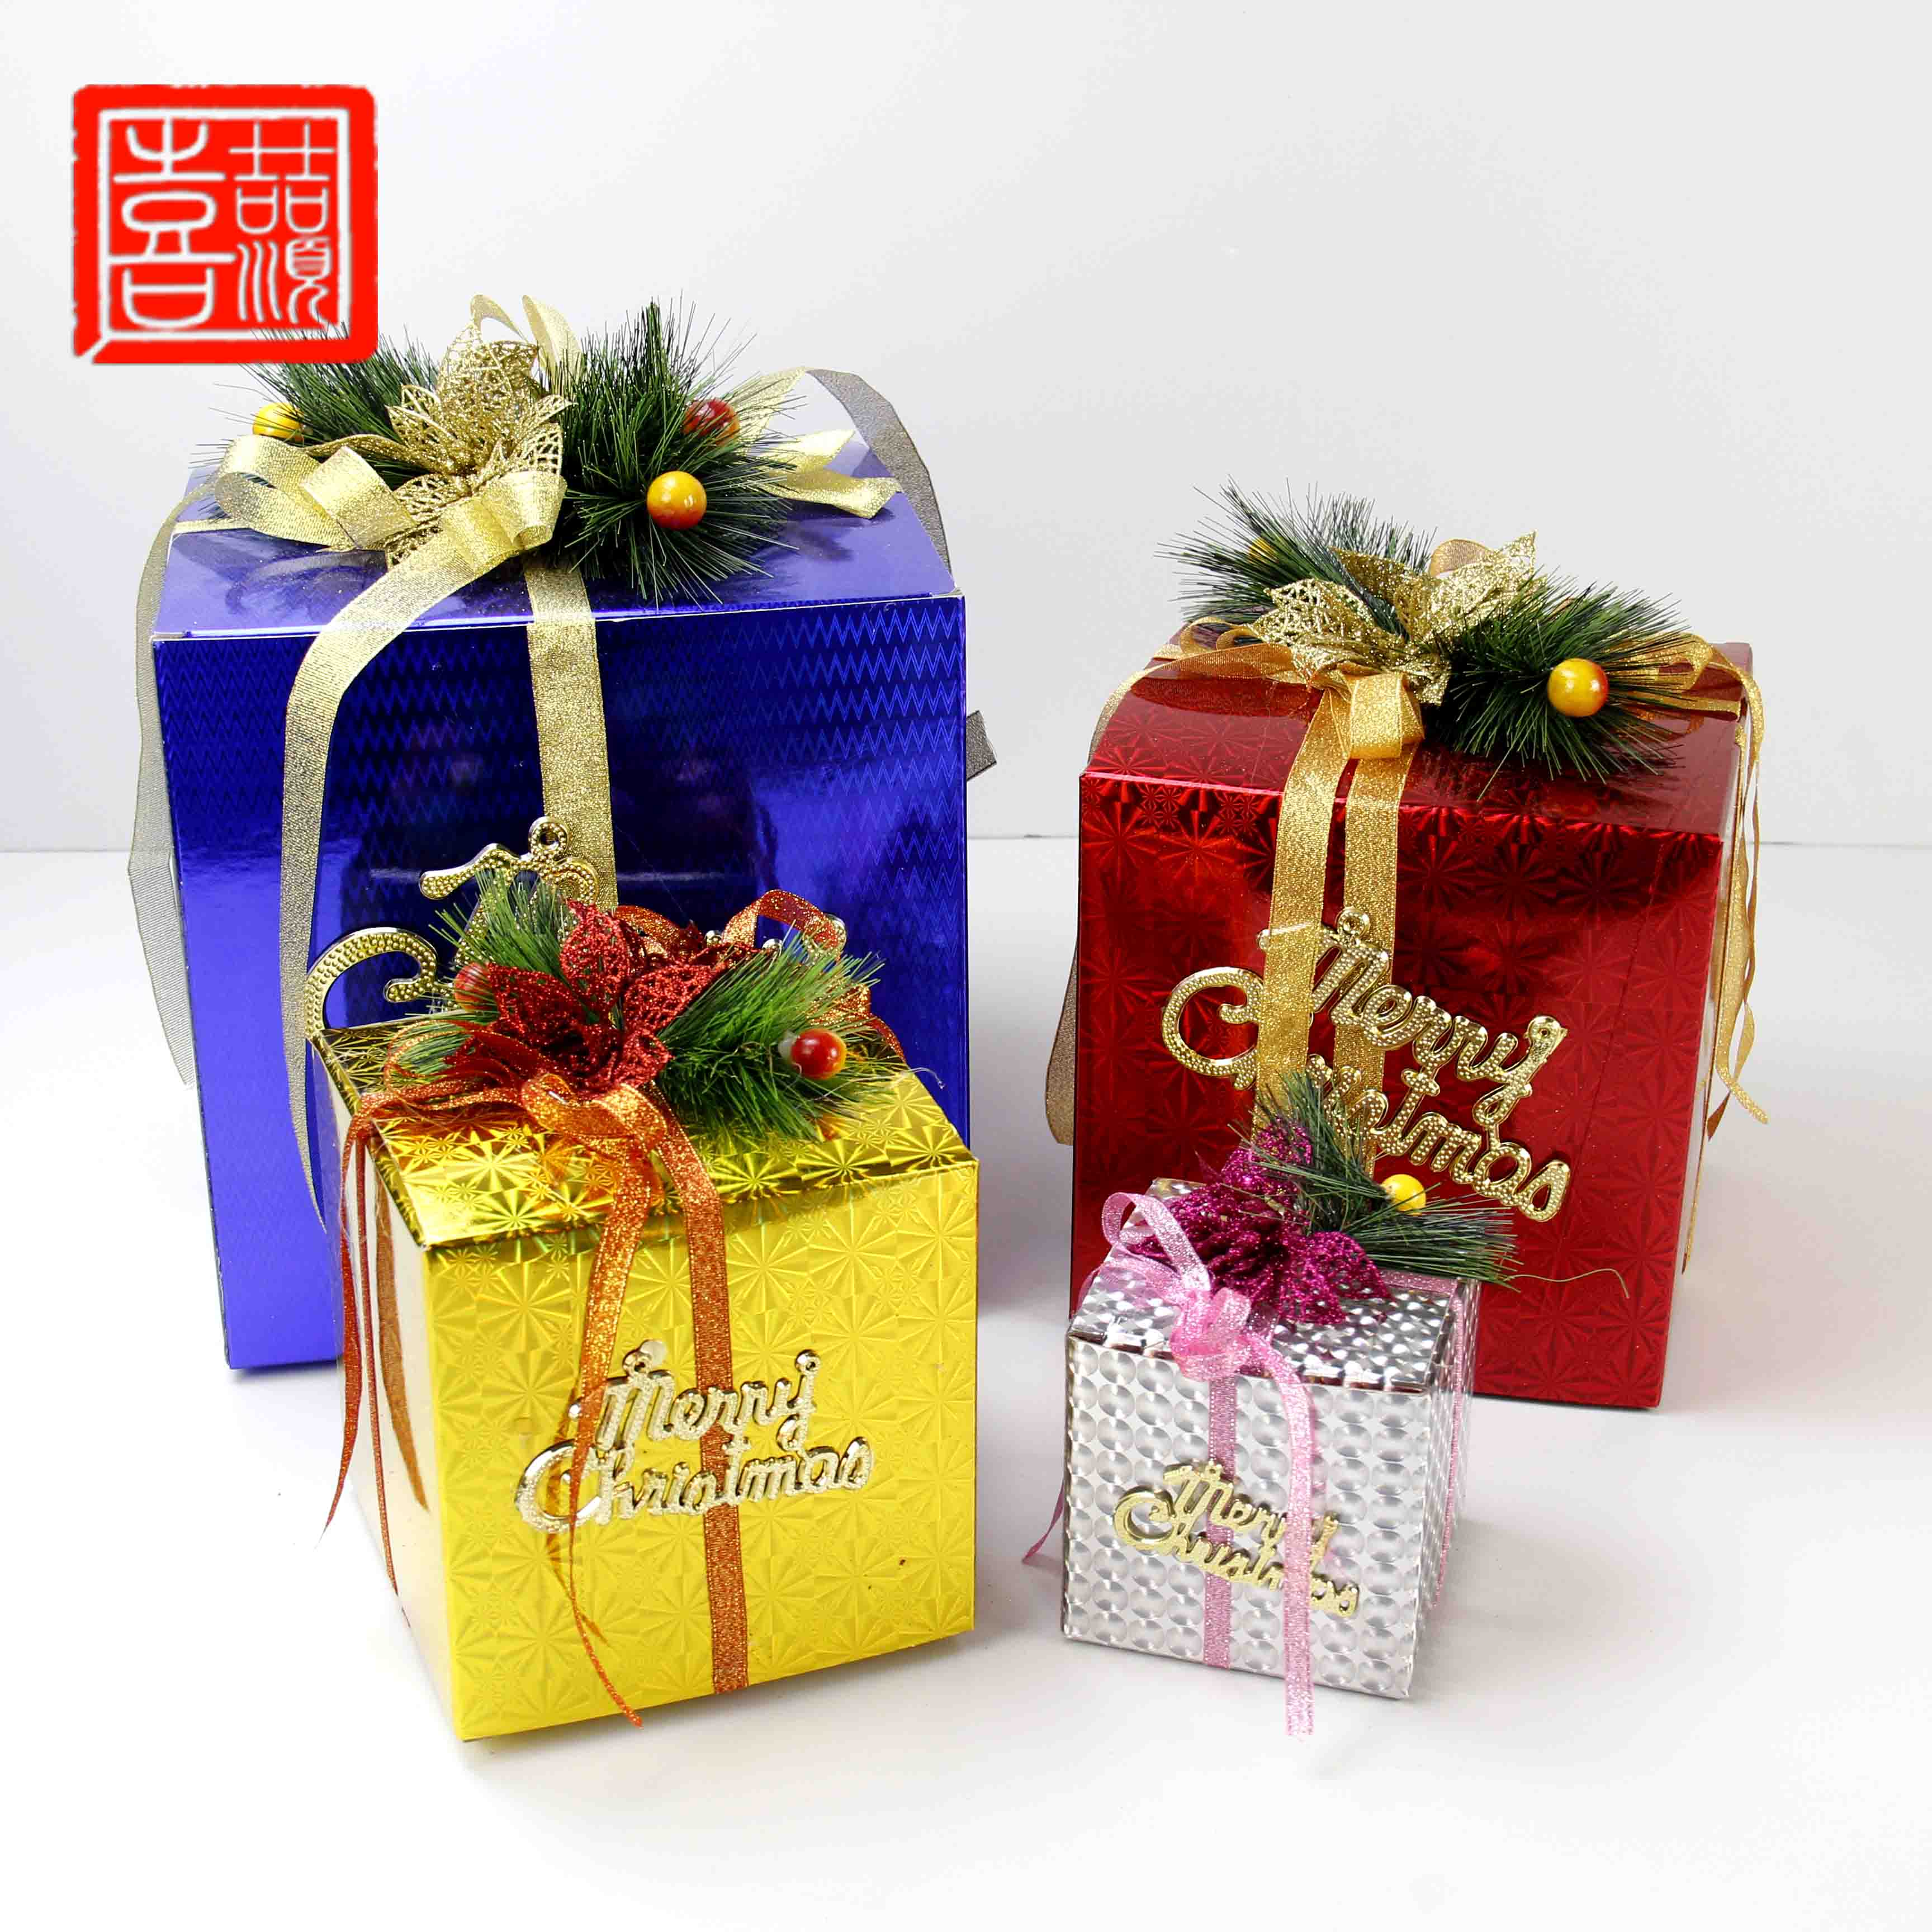 xi shun zhe stick christmas arrangement of decorative ornaments upscale christmas gift box decorated christmas fruit